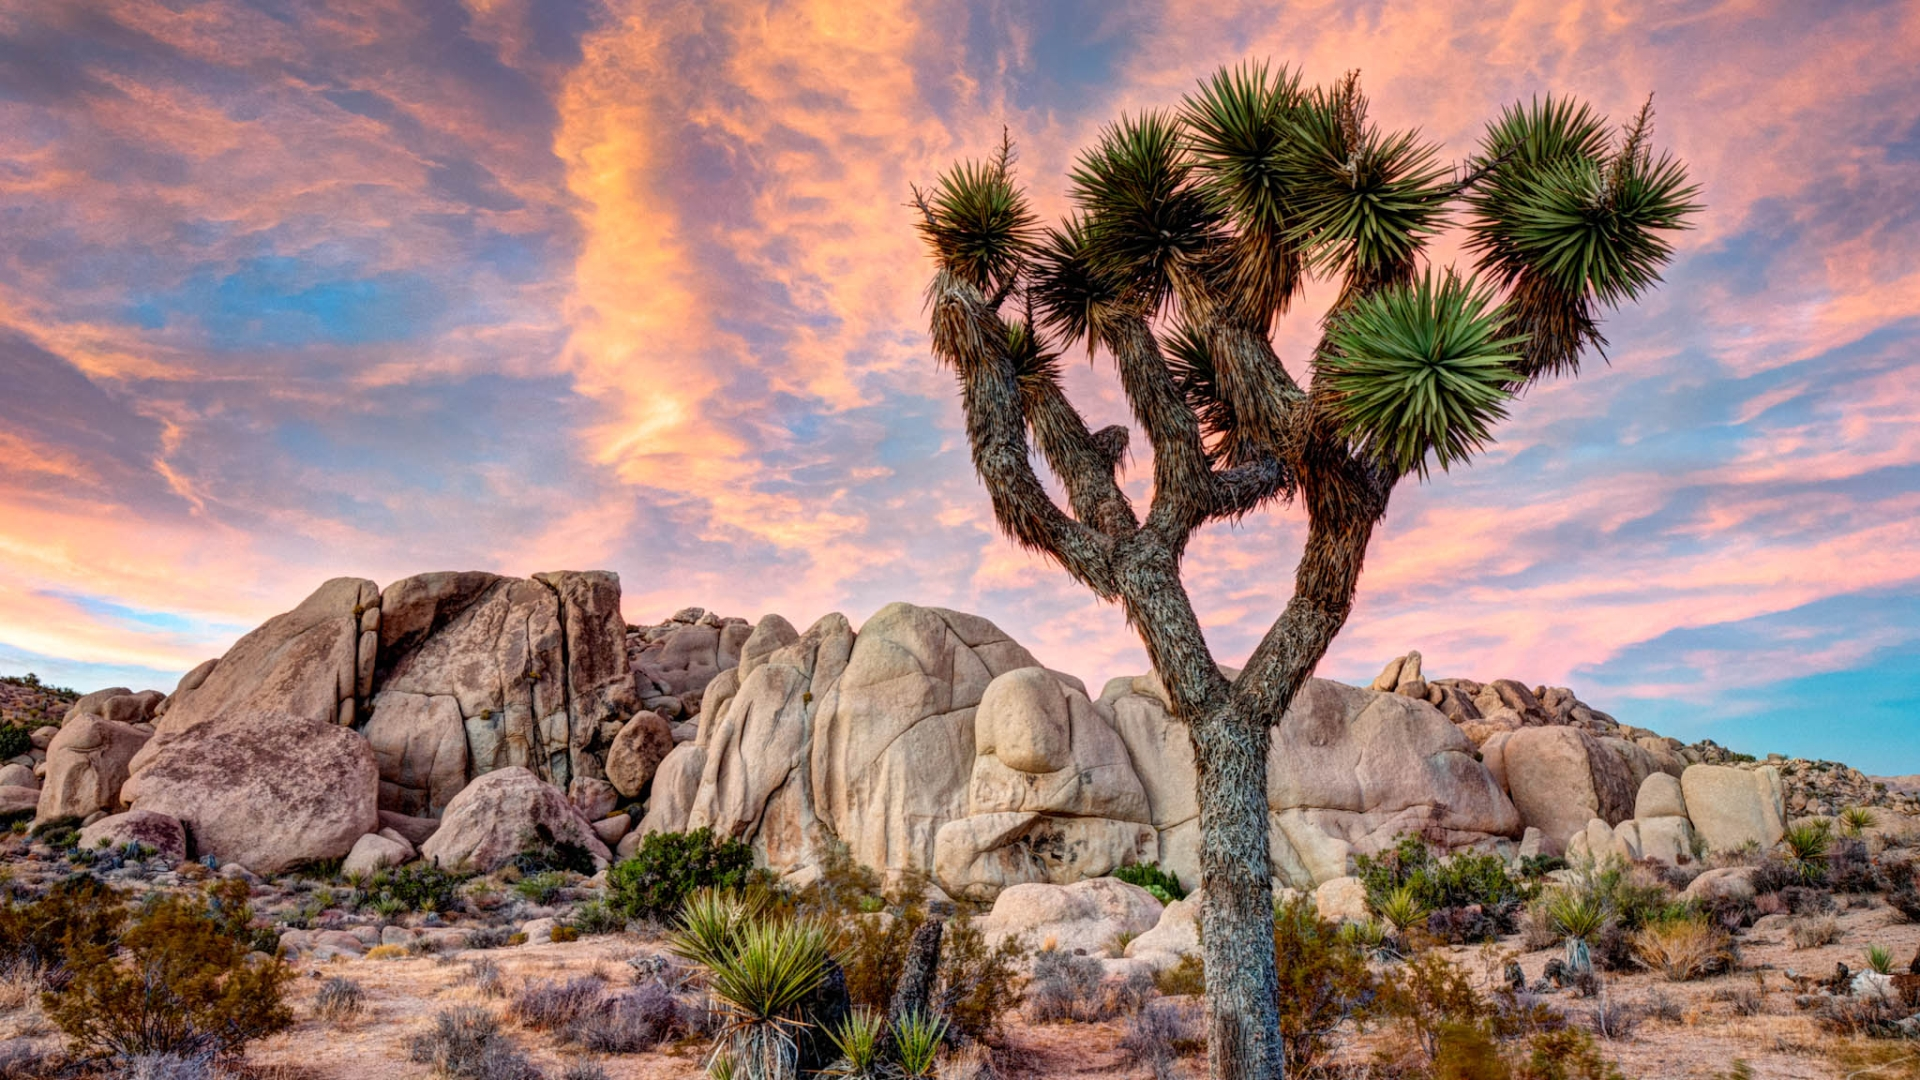 High Resolution Wallpaper | Joshua Tree National Park 1920x1080 px